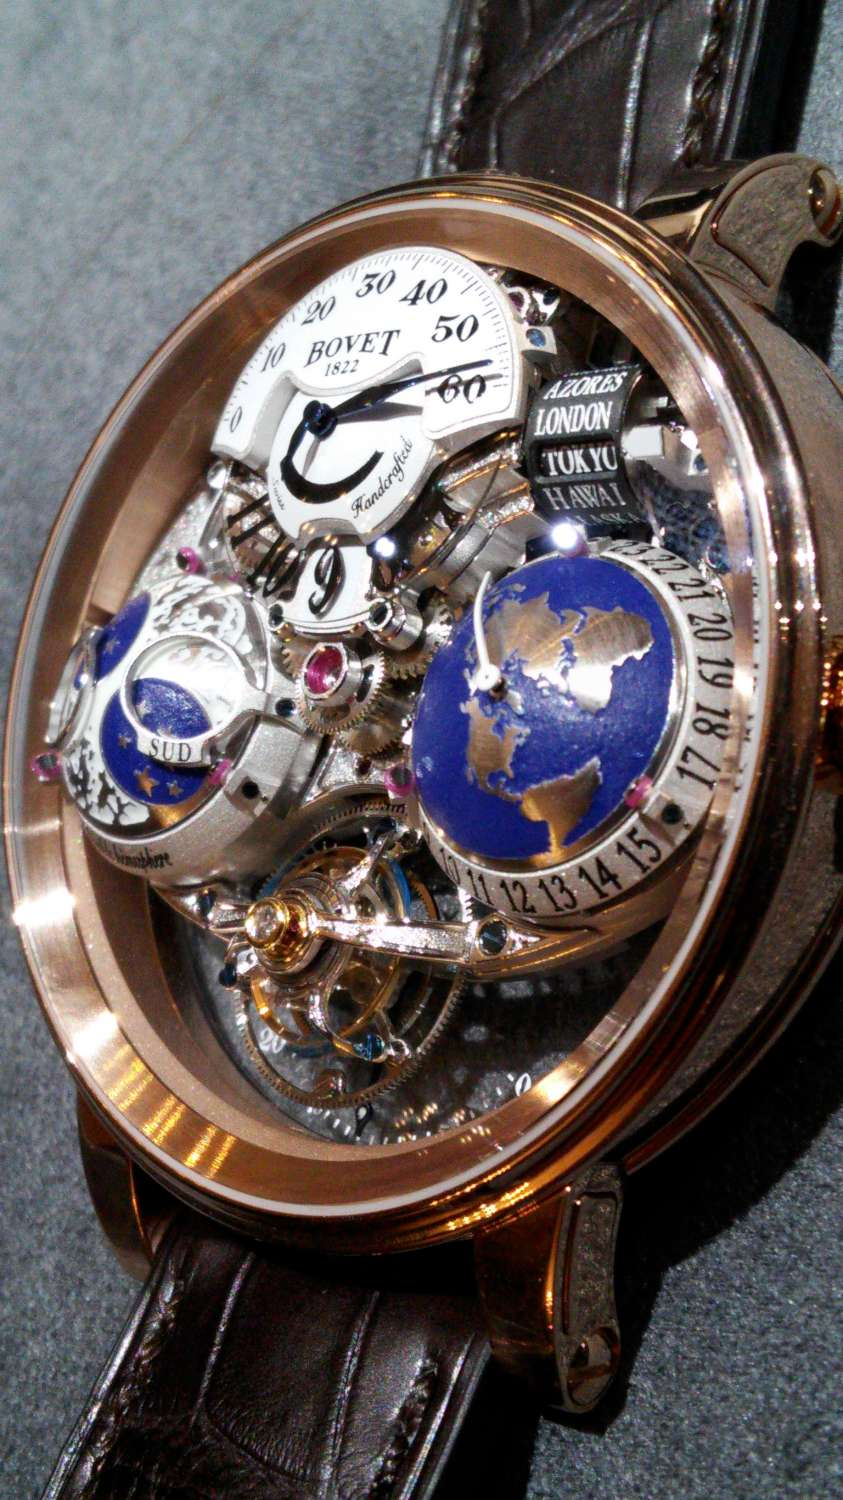 watches rectangle in bovet journey artistic novelties continues tourbillon edouard their watchonista articles